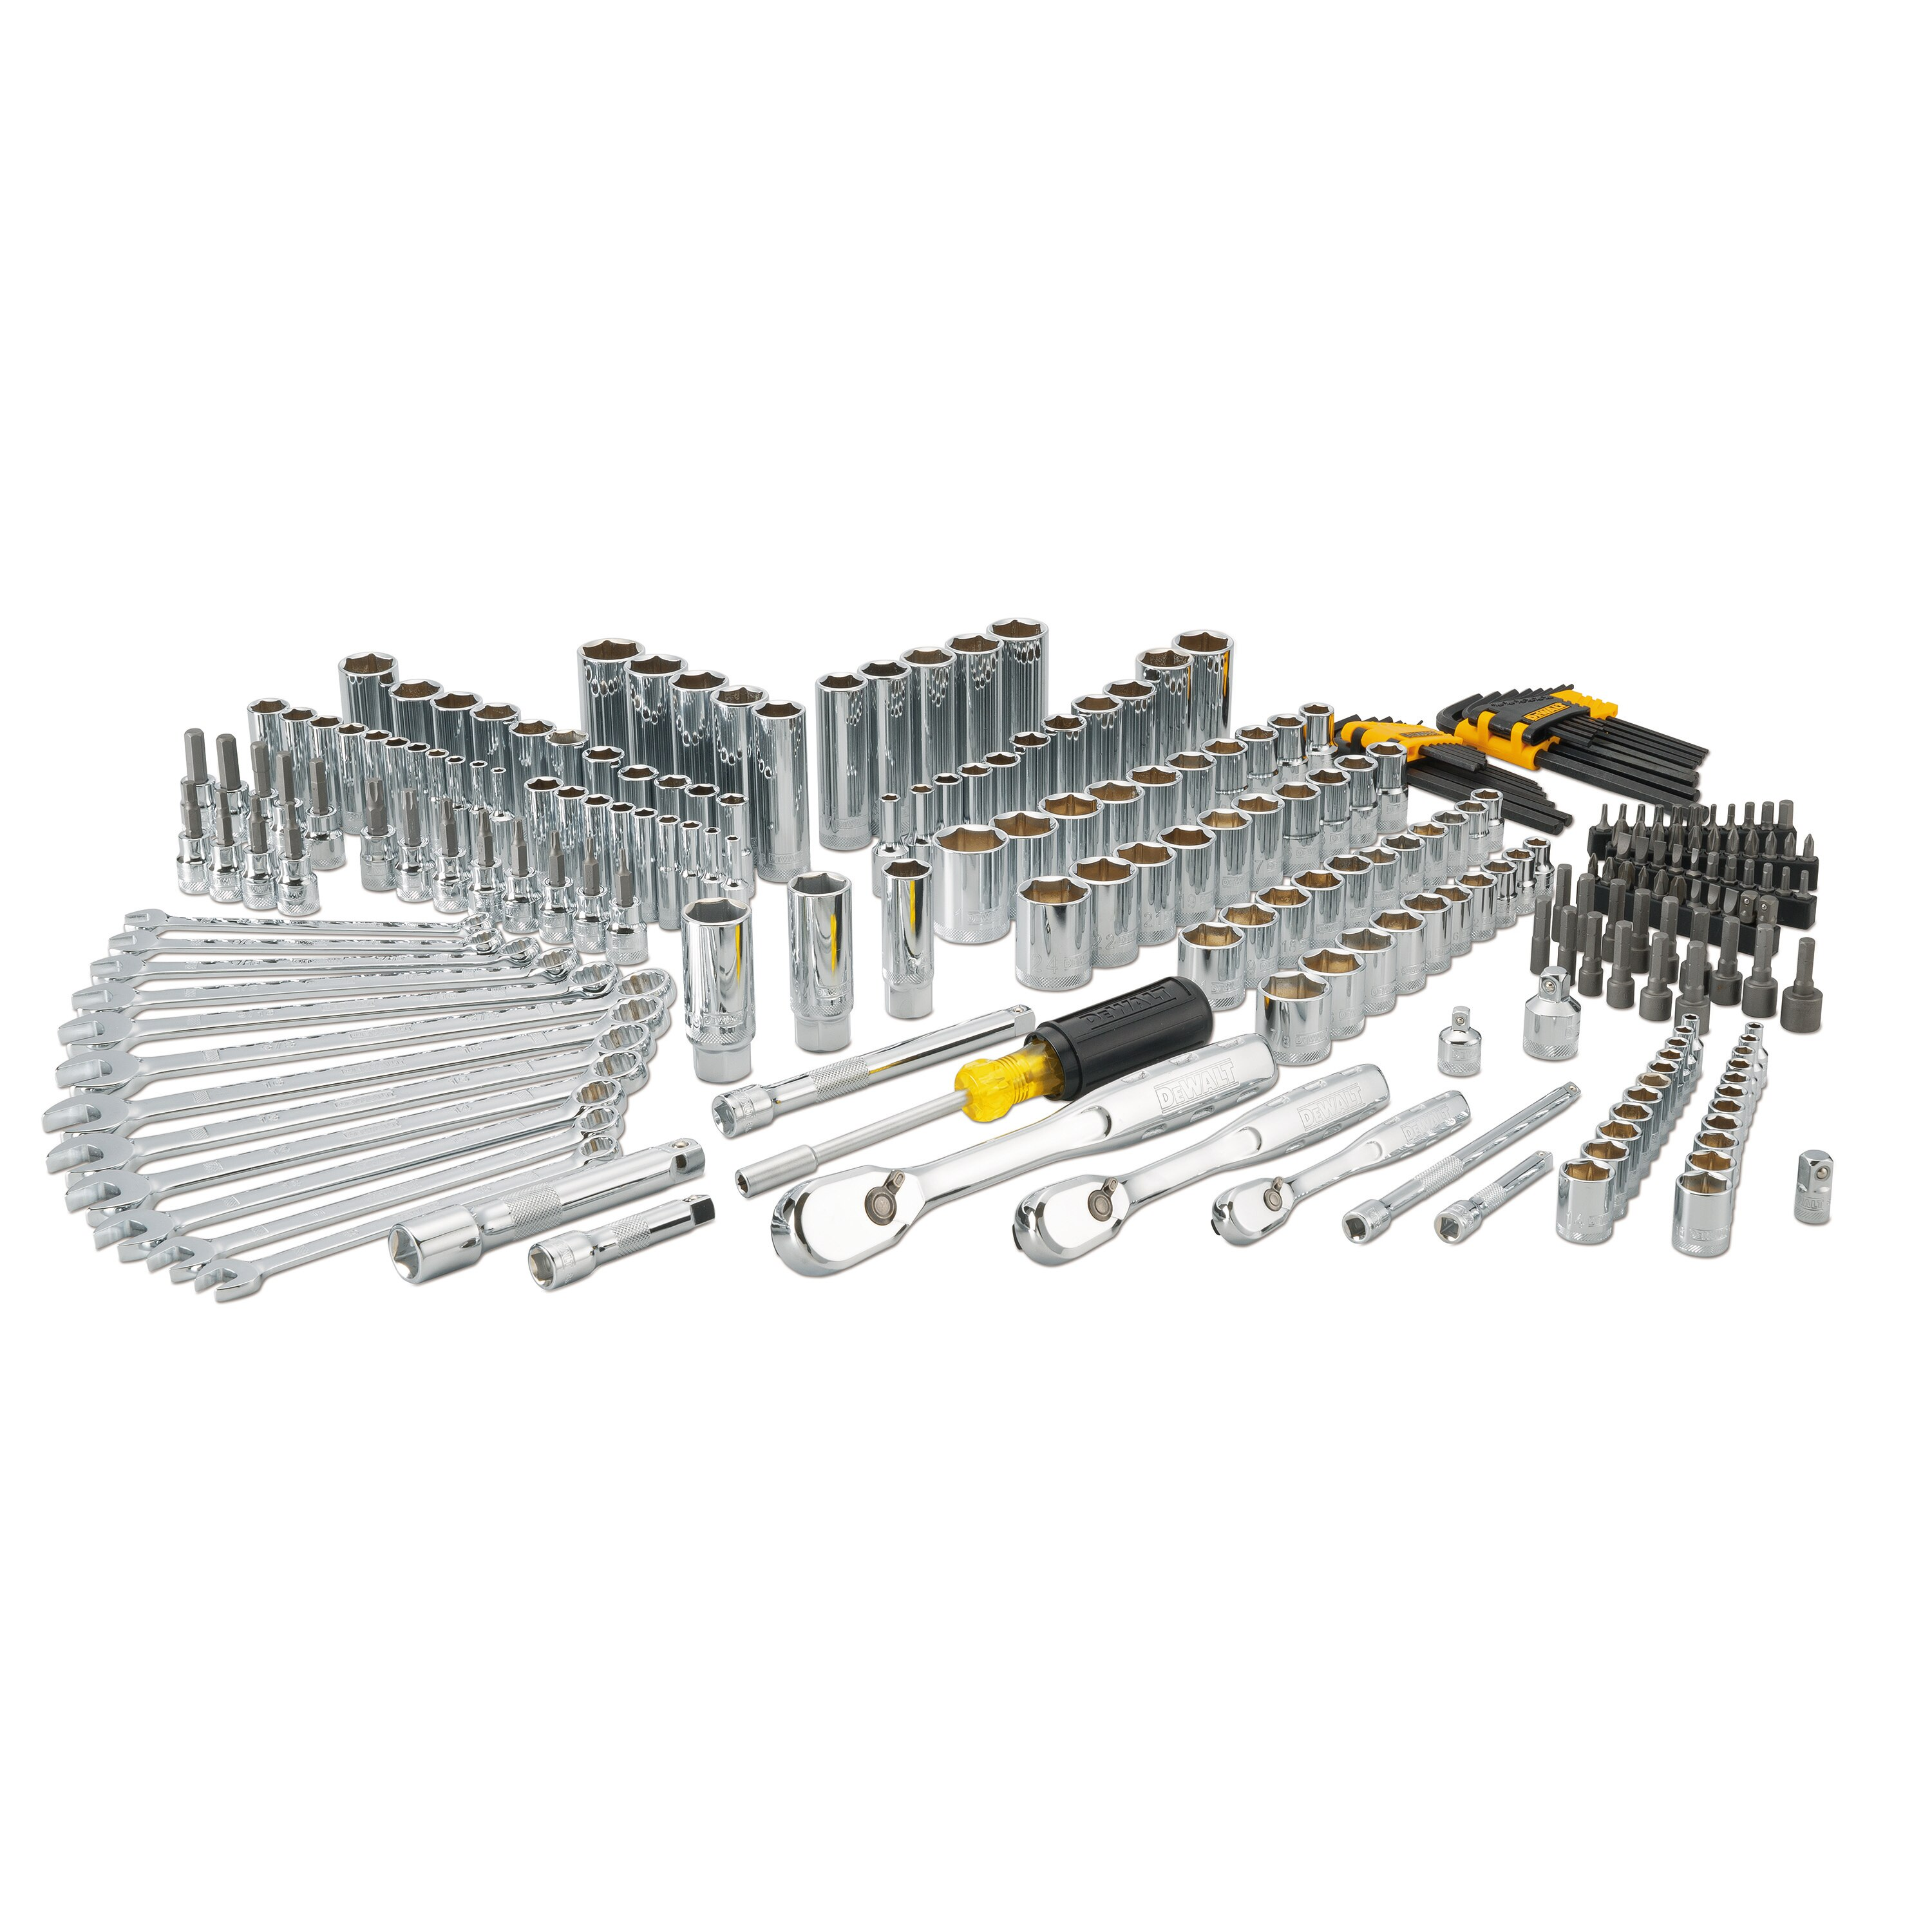 DEWALT - 247 pc Mechanics Tool Set - DWMT81535